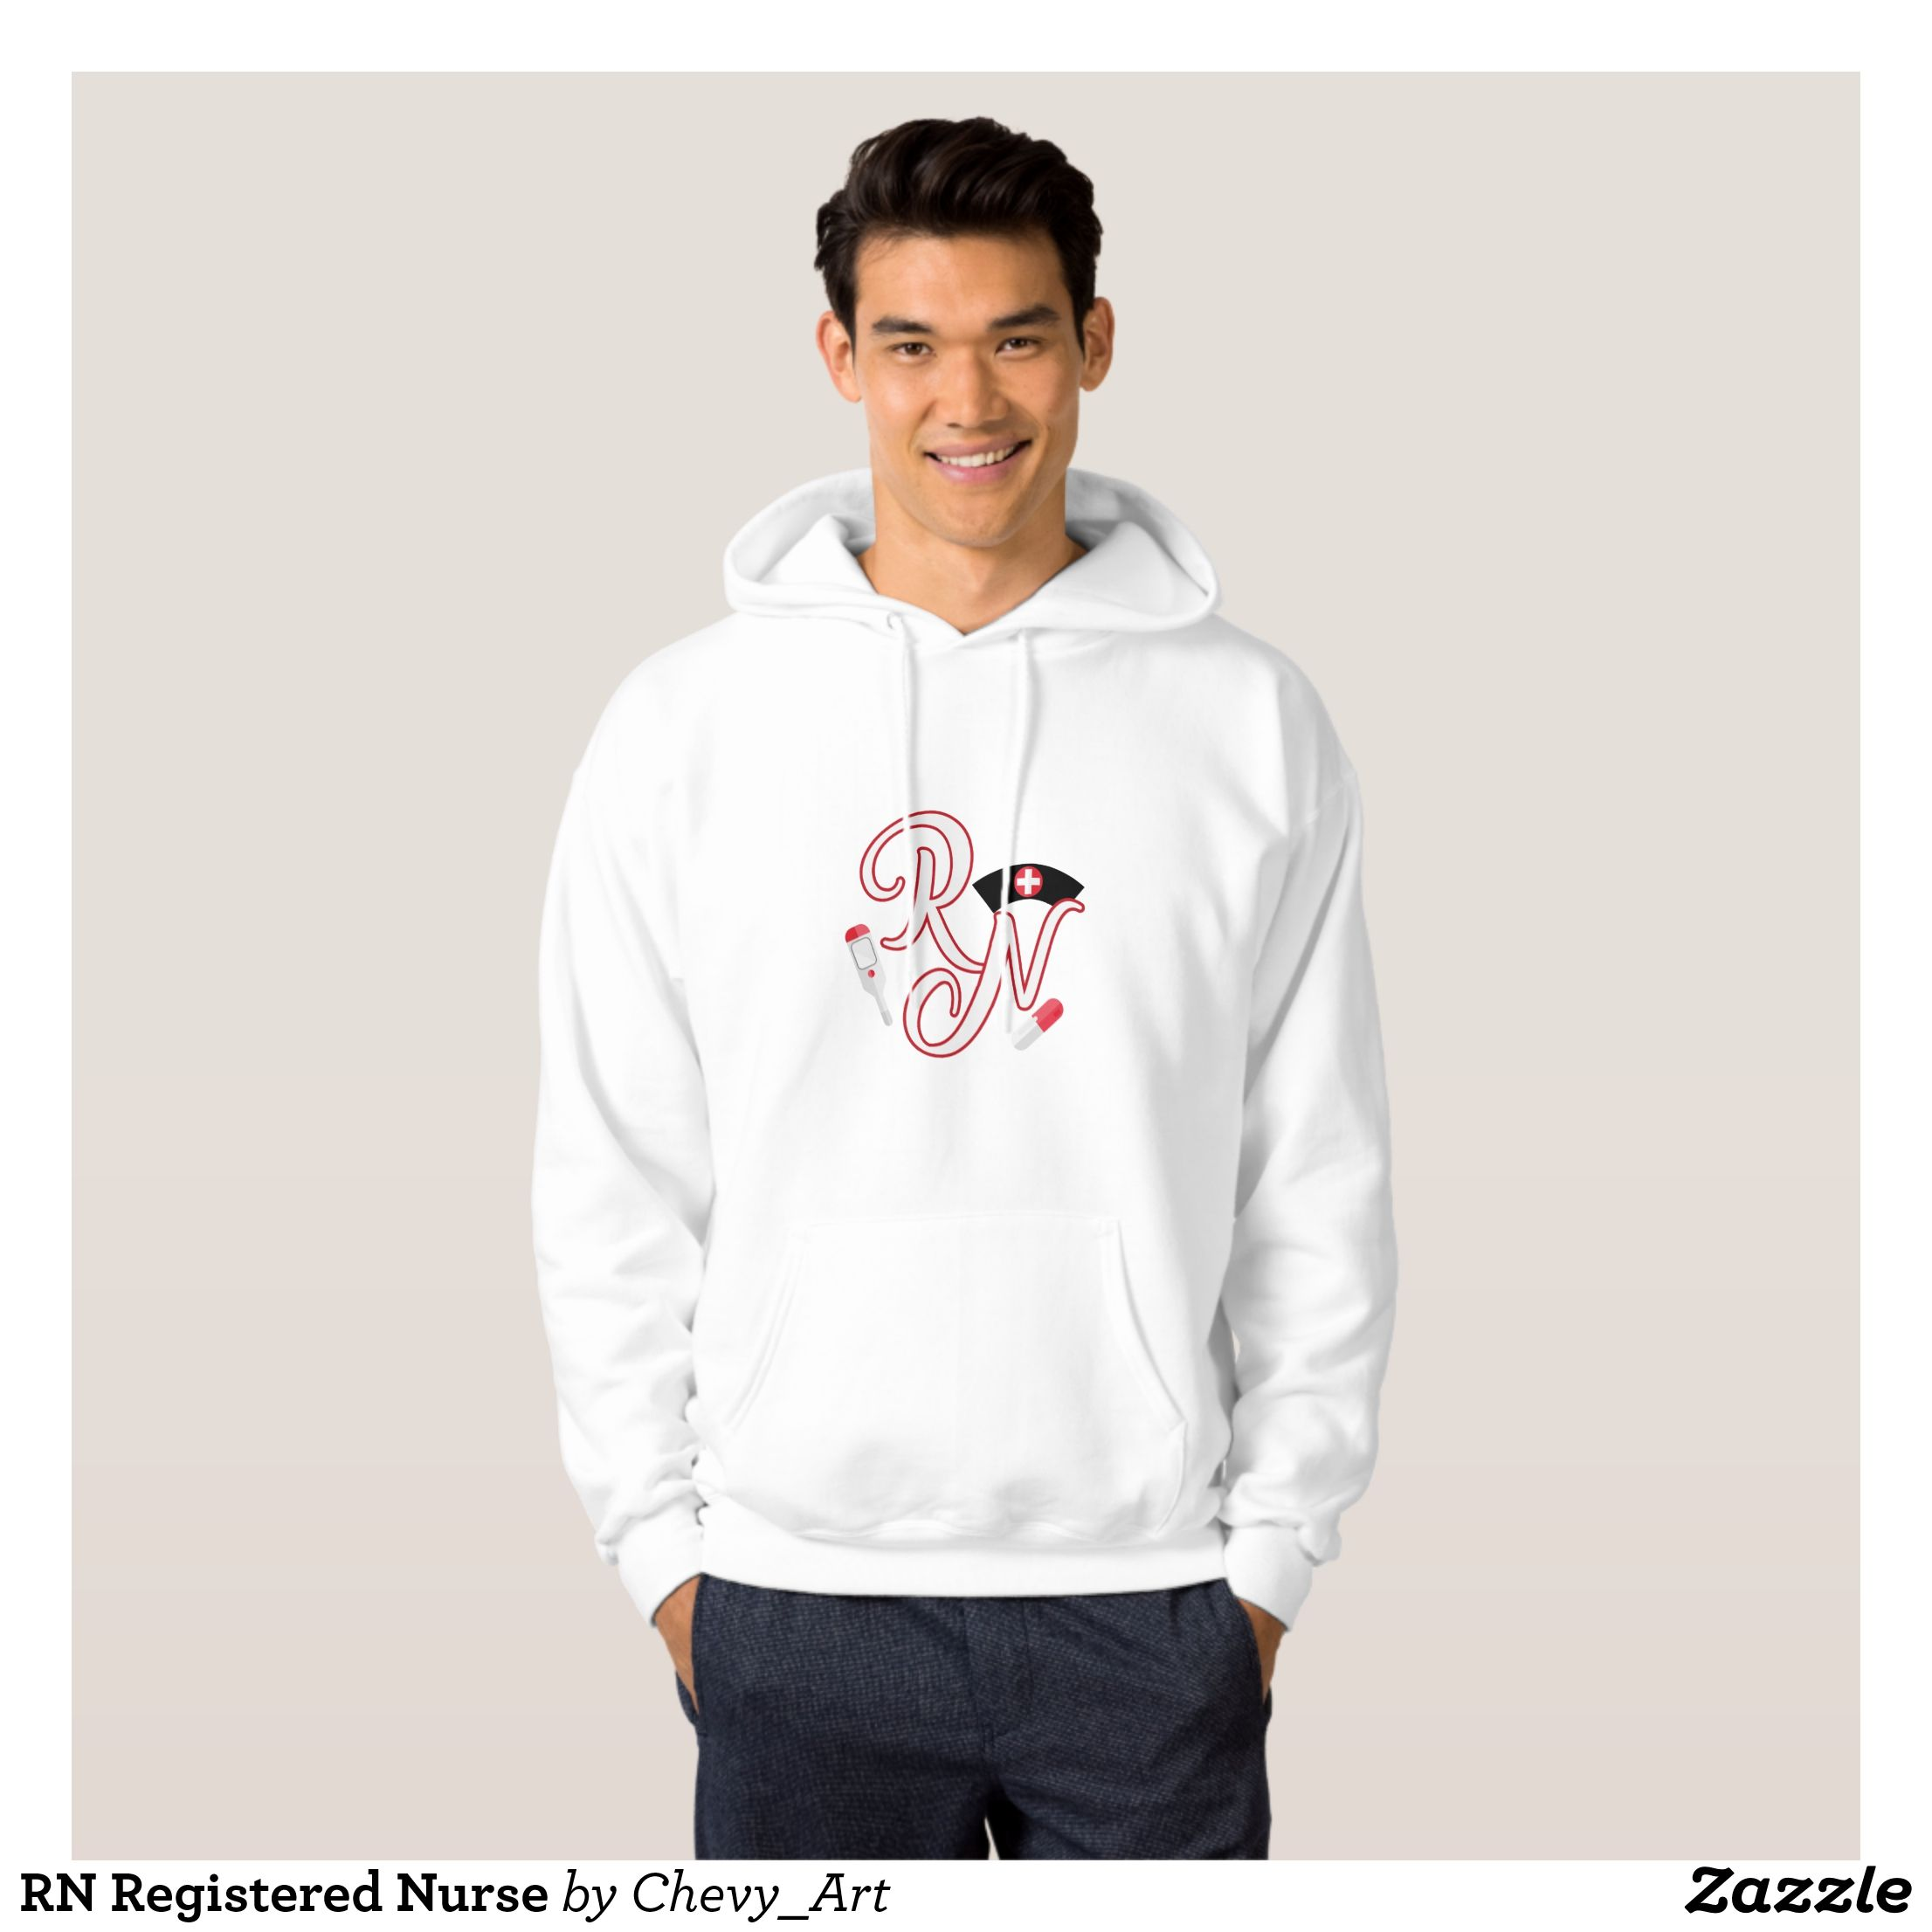 Rn Registered Nurse Hoodie Stylish Comfortable And Warm Hooded Sweatshirts By Talented Fashion Graphic D Mens Sweatshirts Hoodie Hoodies Sweatshirts Hoodie [ 2212 x 2212 Pixel ]